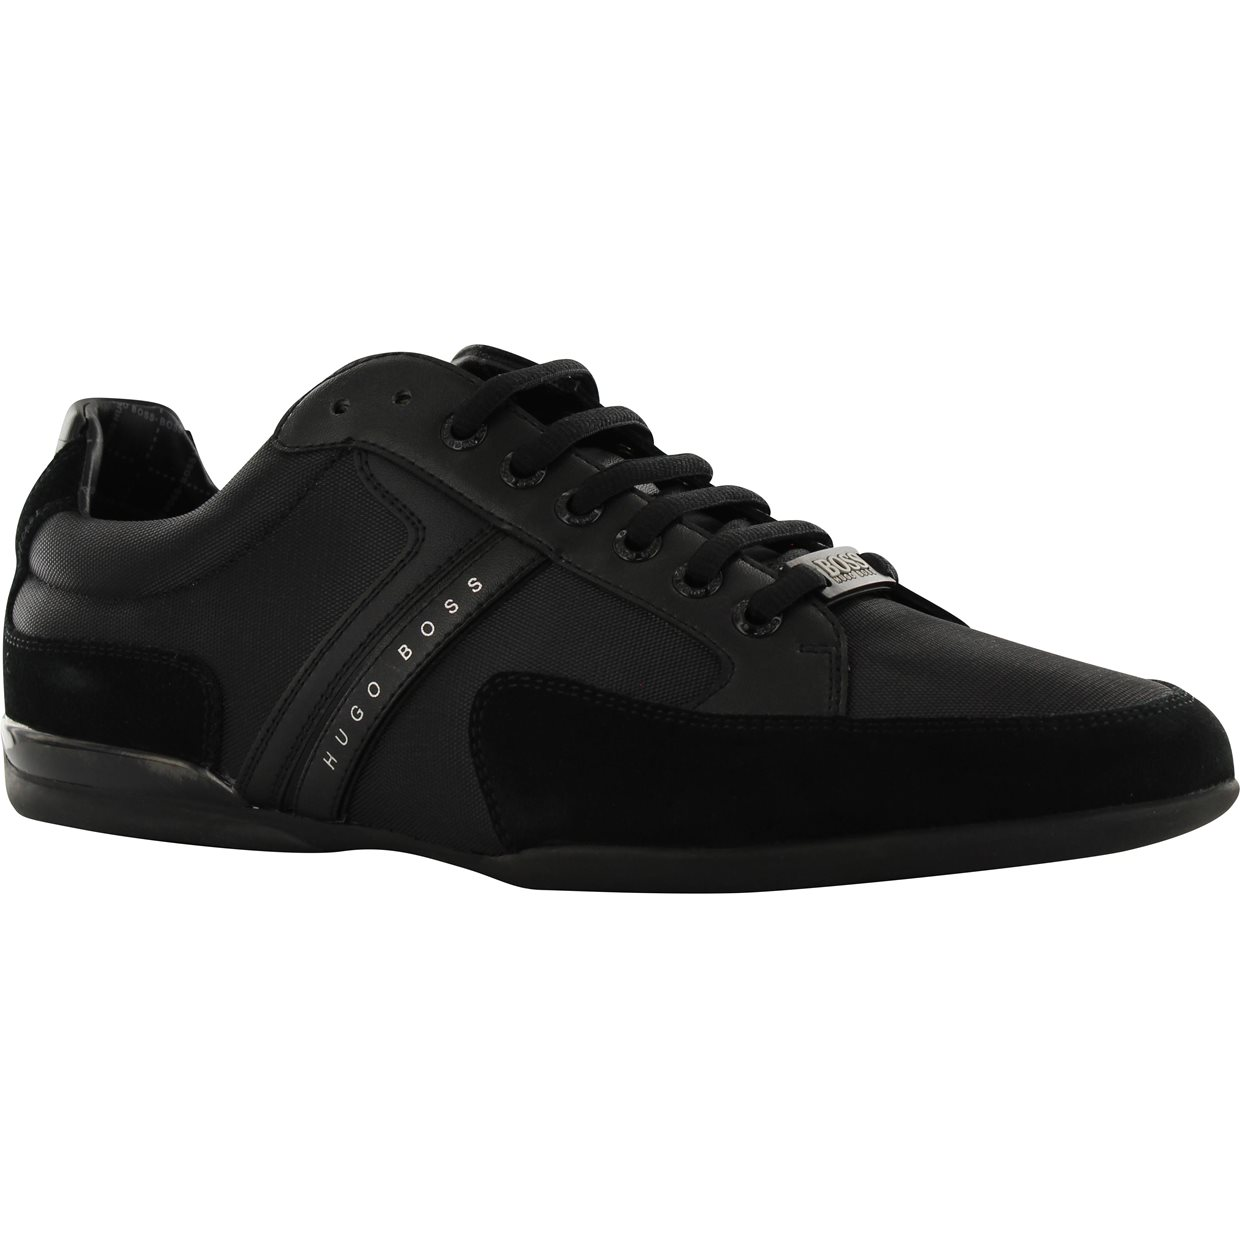 Hugo Boss Sneakers Hugo Boss Spacit Sneakers Shoes At Globalgolf